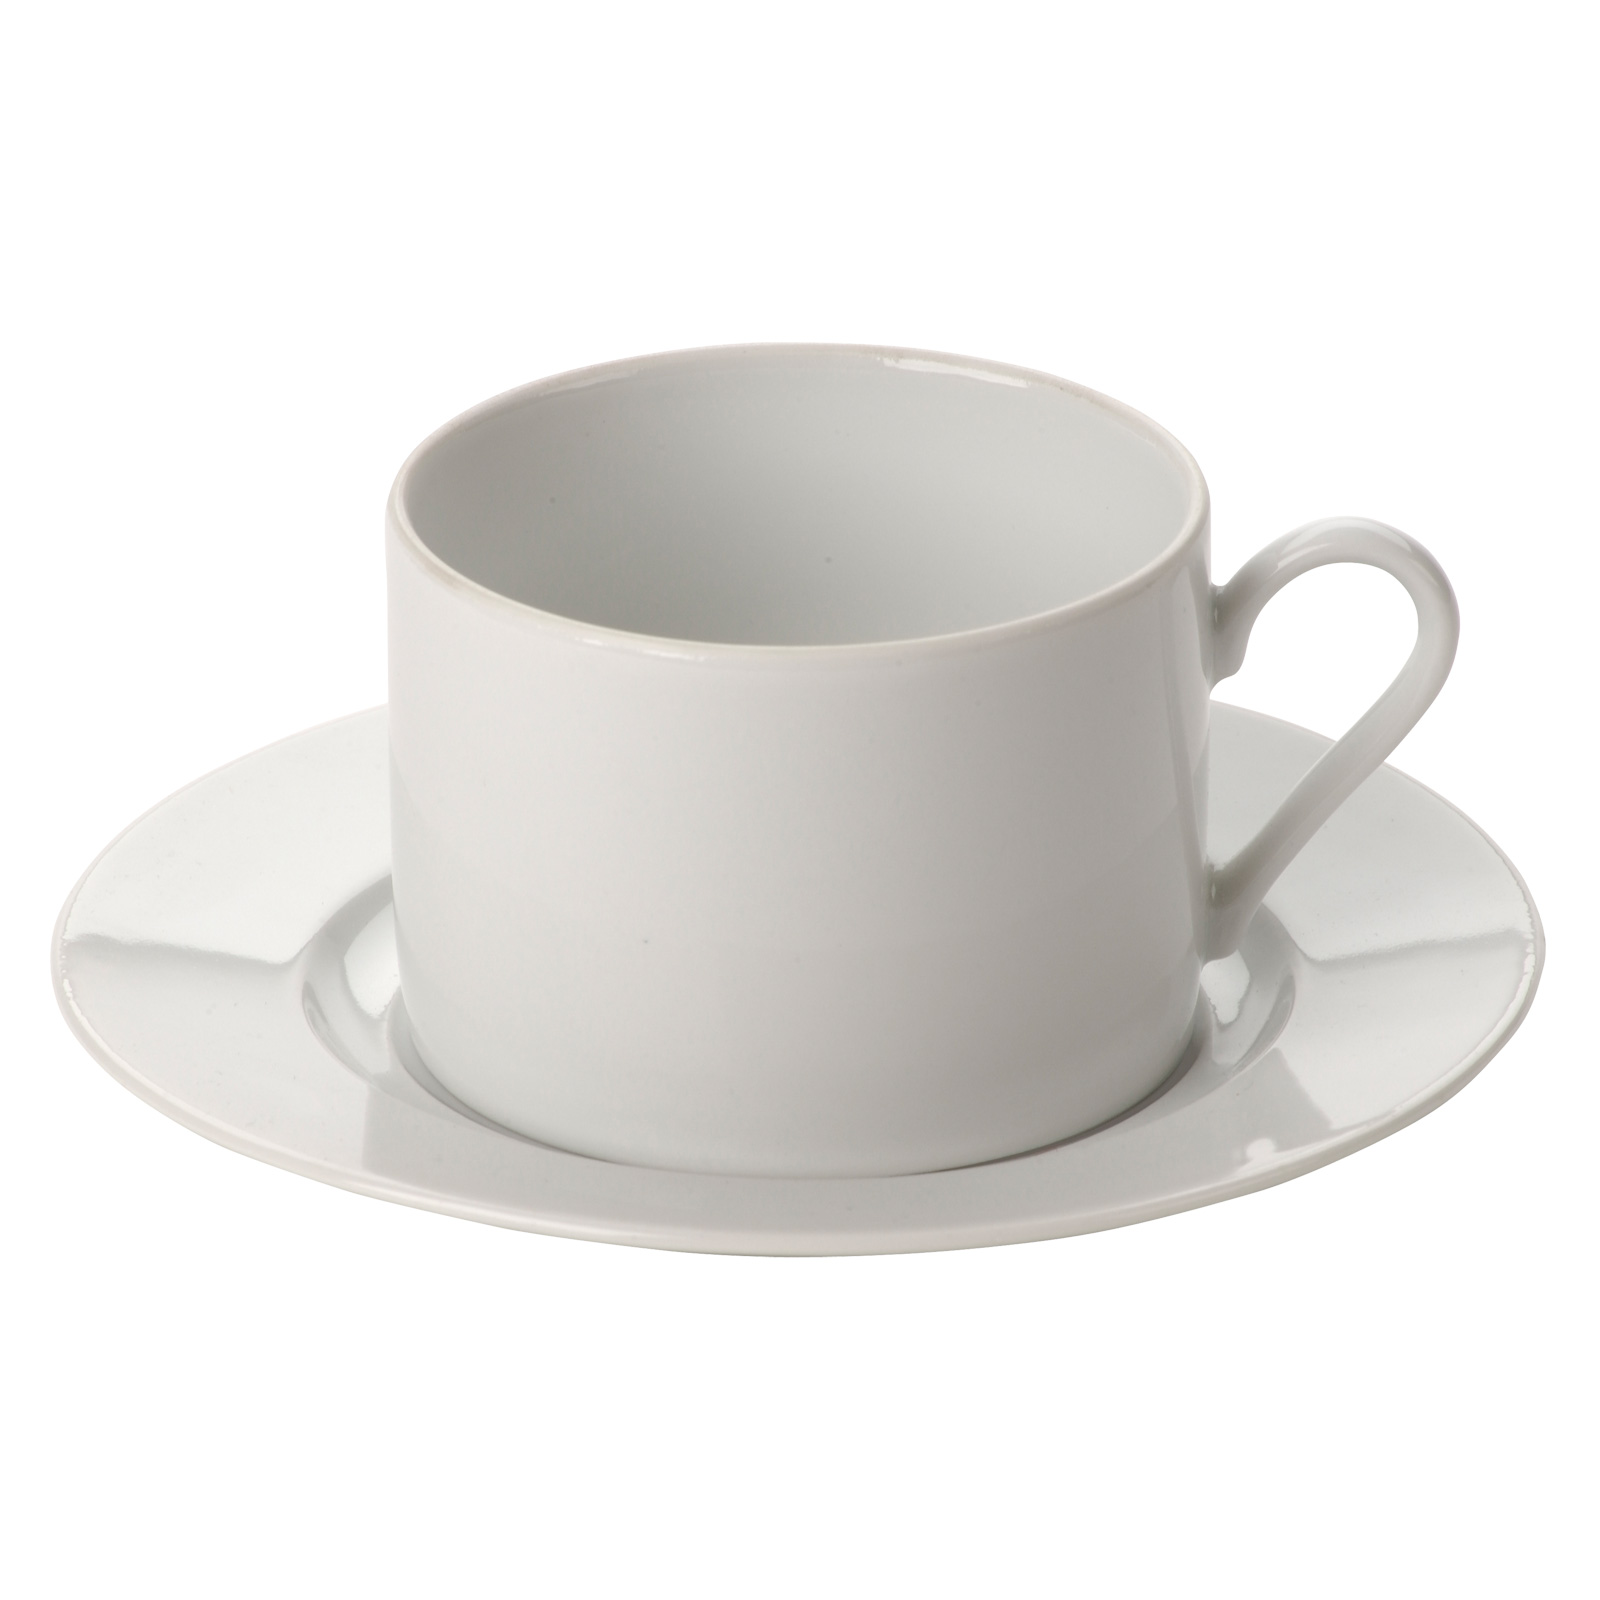 Set of 12 Roma Teacups by Lubiana